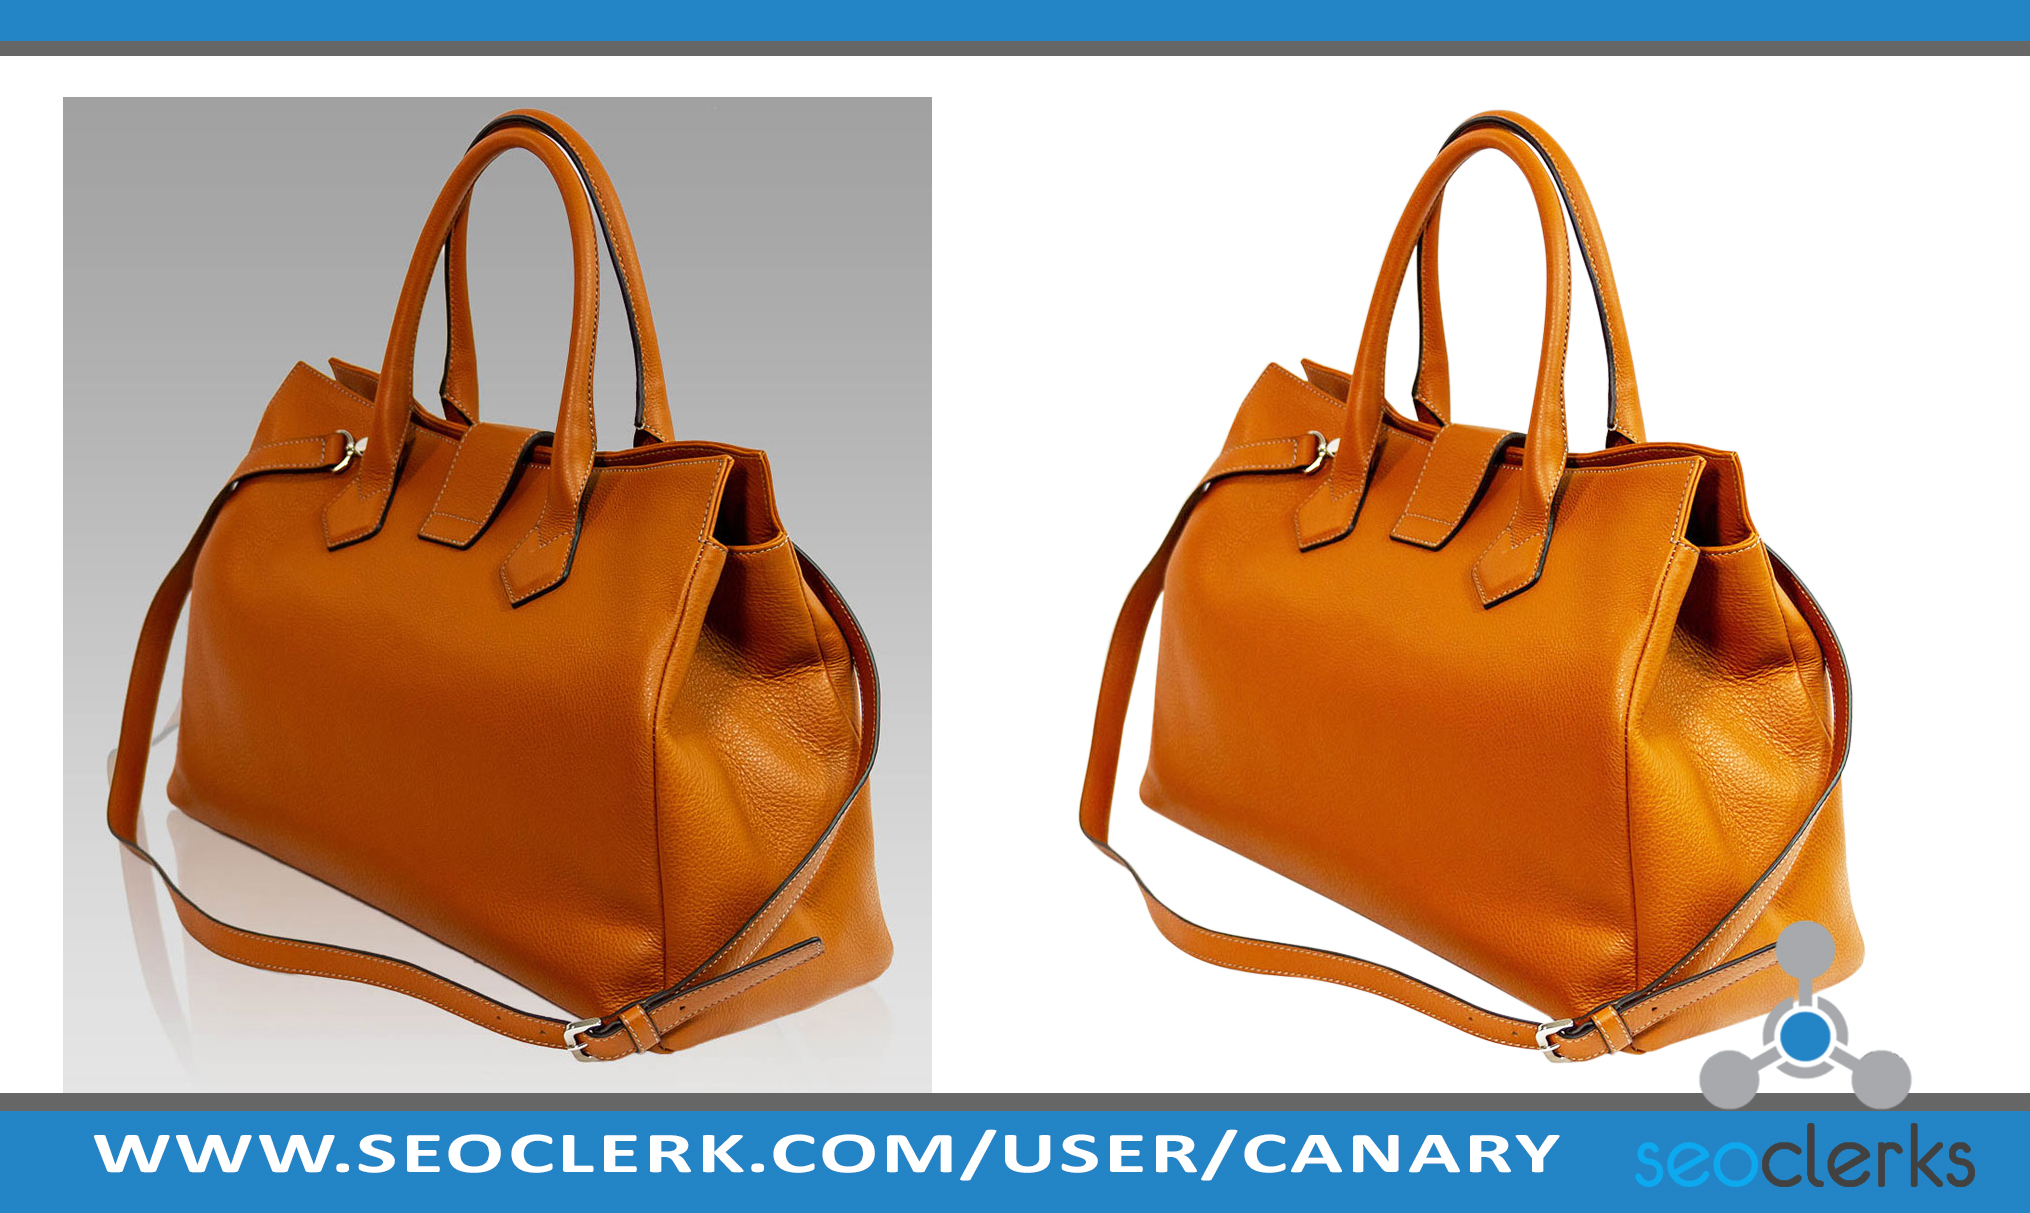 I'll do product images retouching and enhancement